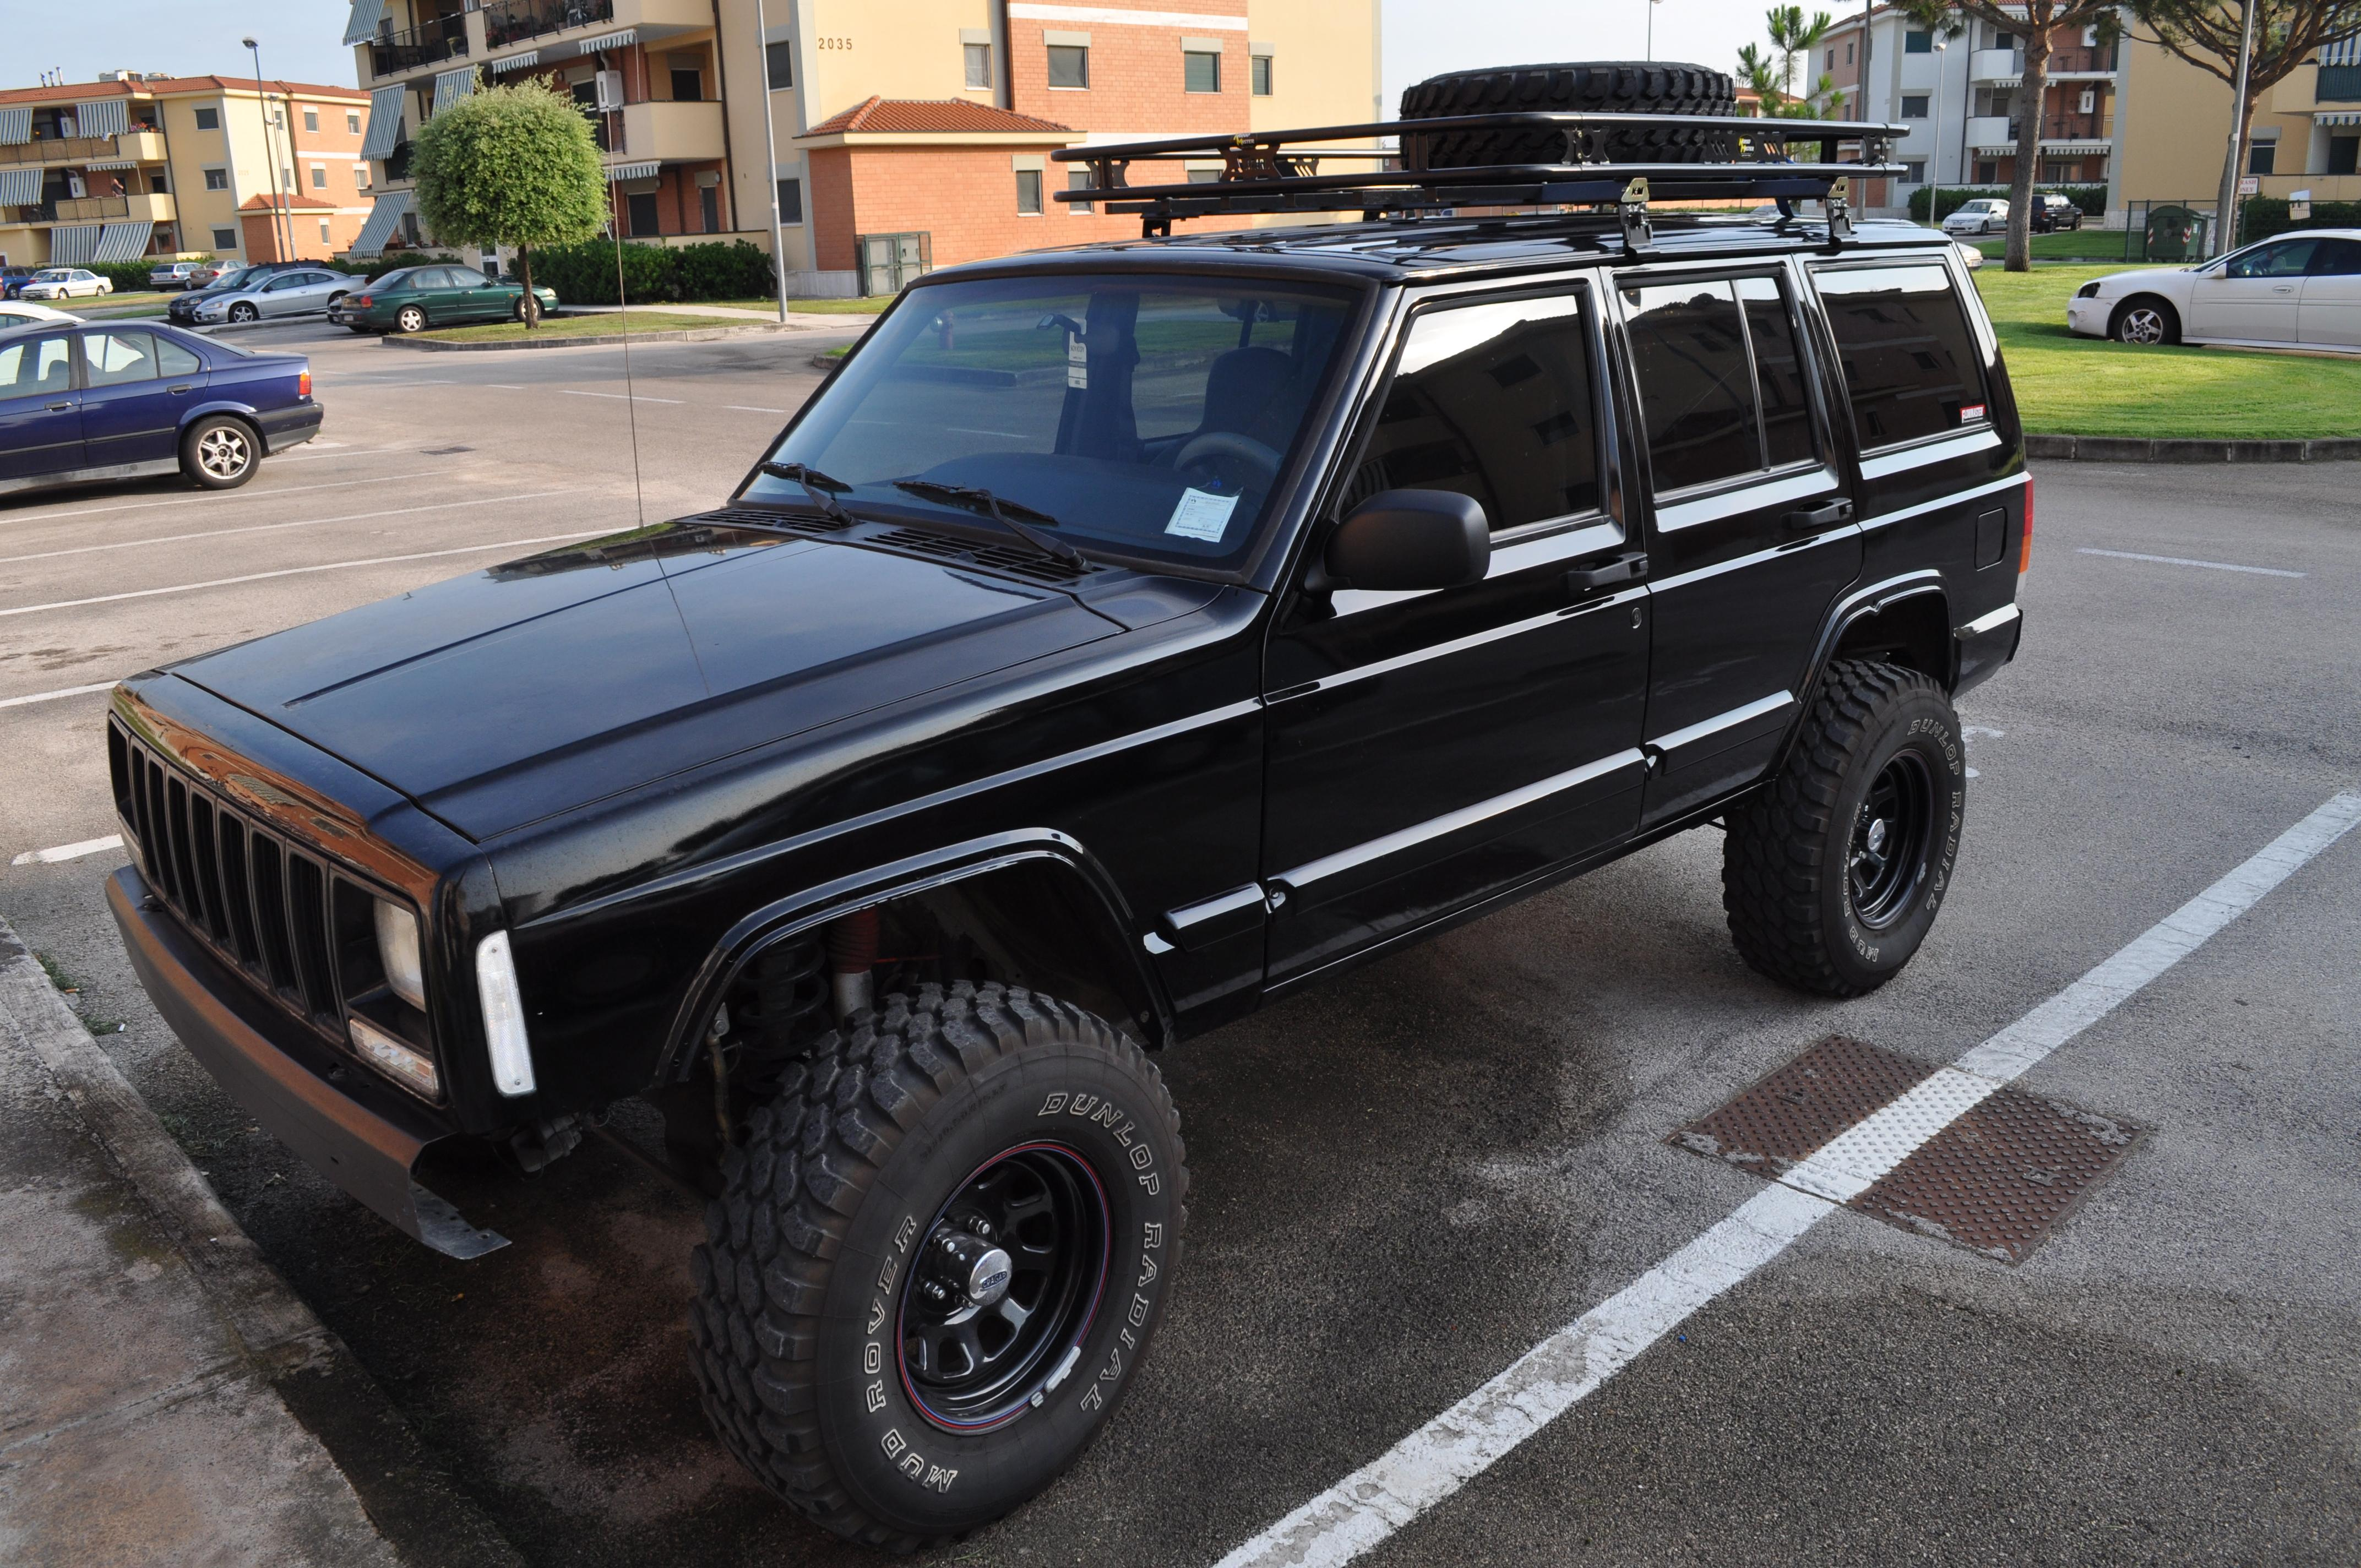 The 1995 Nissan Pathfinder The Last Real Suv together with 1999 2017 Ford F250 F350 Front Suspension Lift Kit 2wd 4x2 furthermore Bds Lift Kit S10 Blazer in addition Watch further 99 Jeep Grand Cherokee. on 1995 cherokee lifted